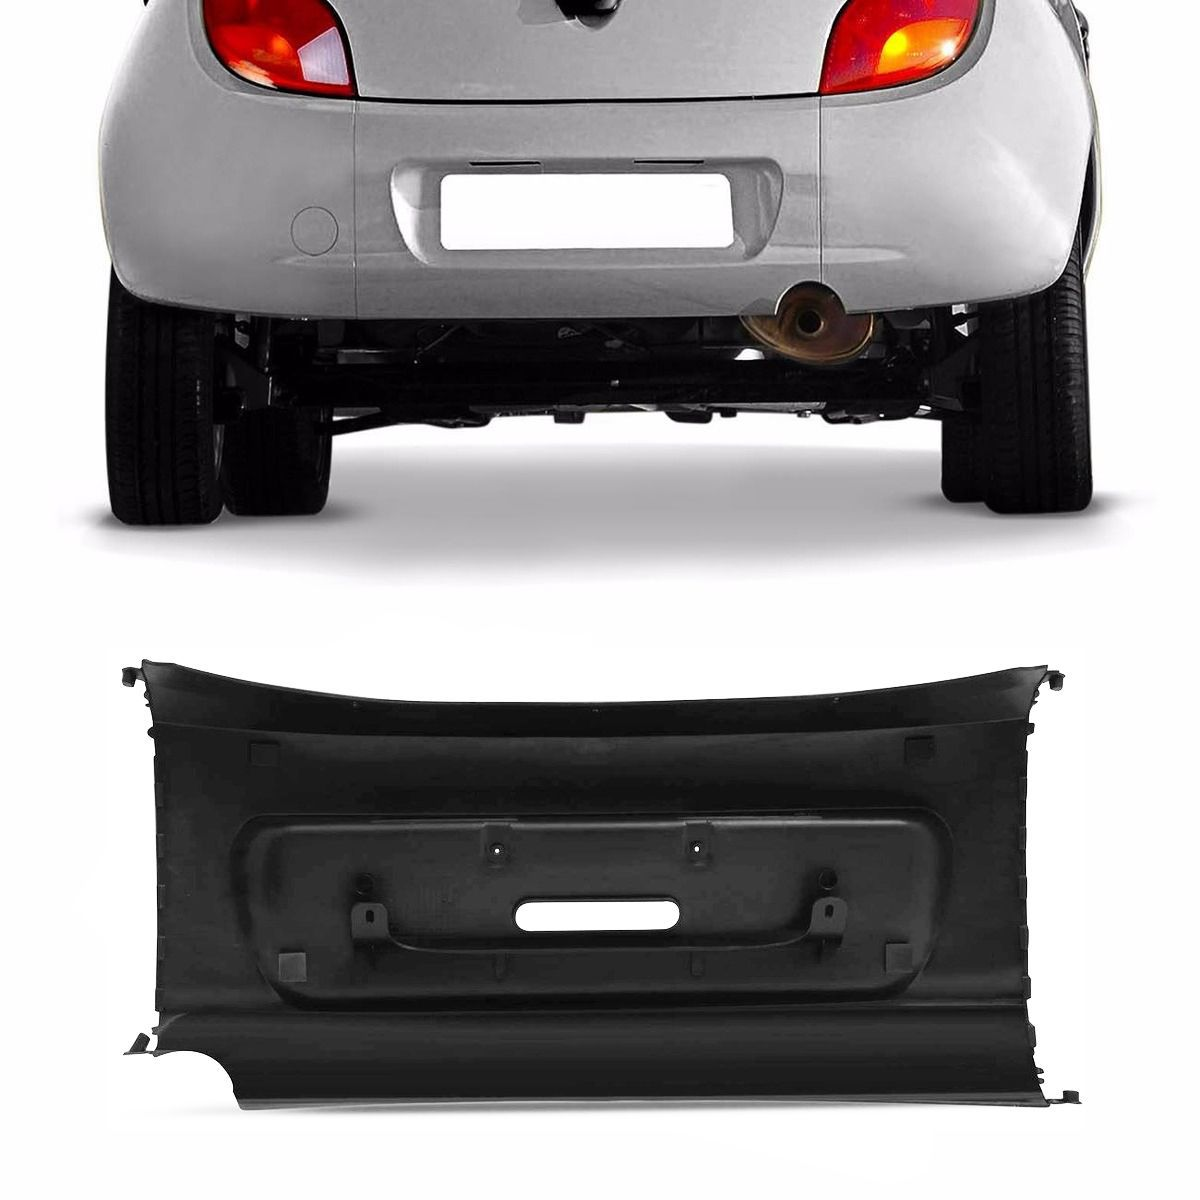 Kit Parachoque Traseiro Central + Lateral Ford Ka 97 a 02 Preto Poroso